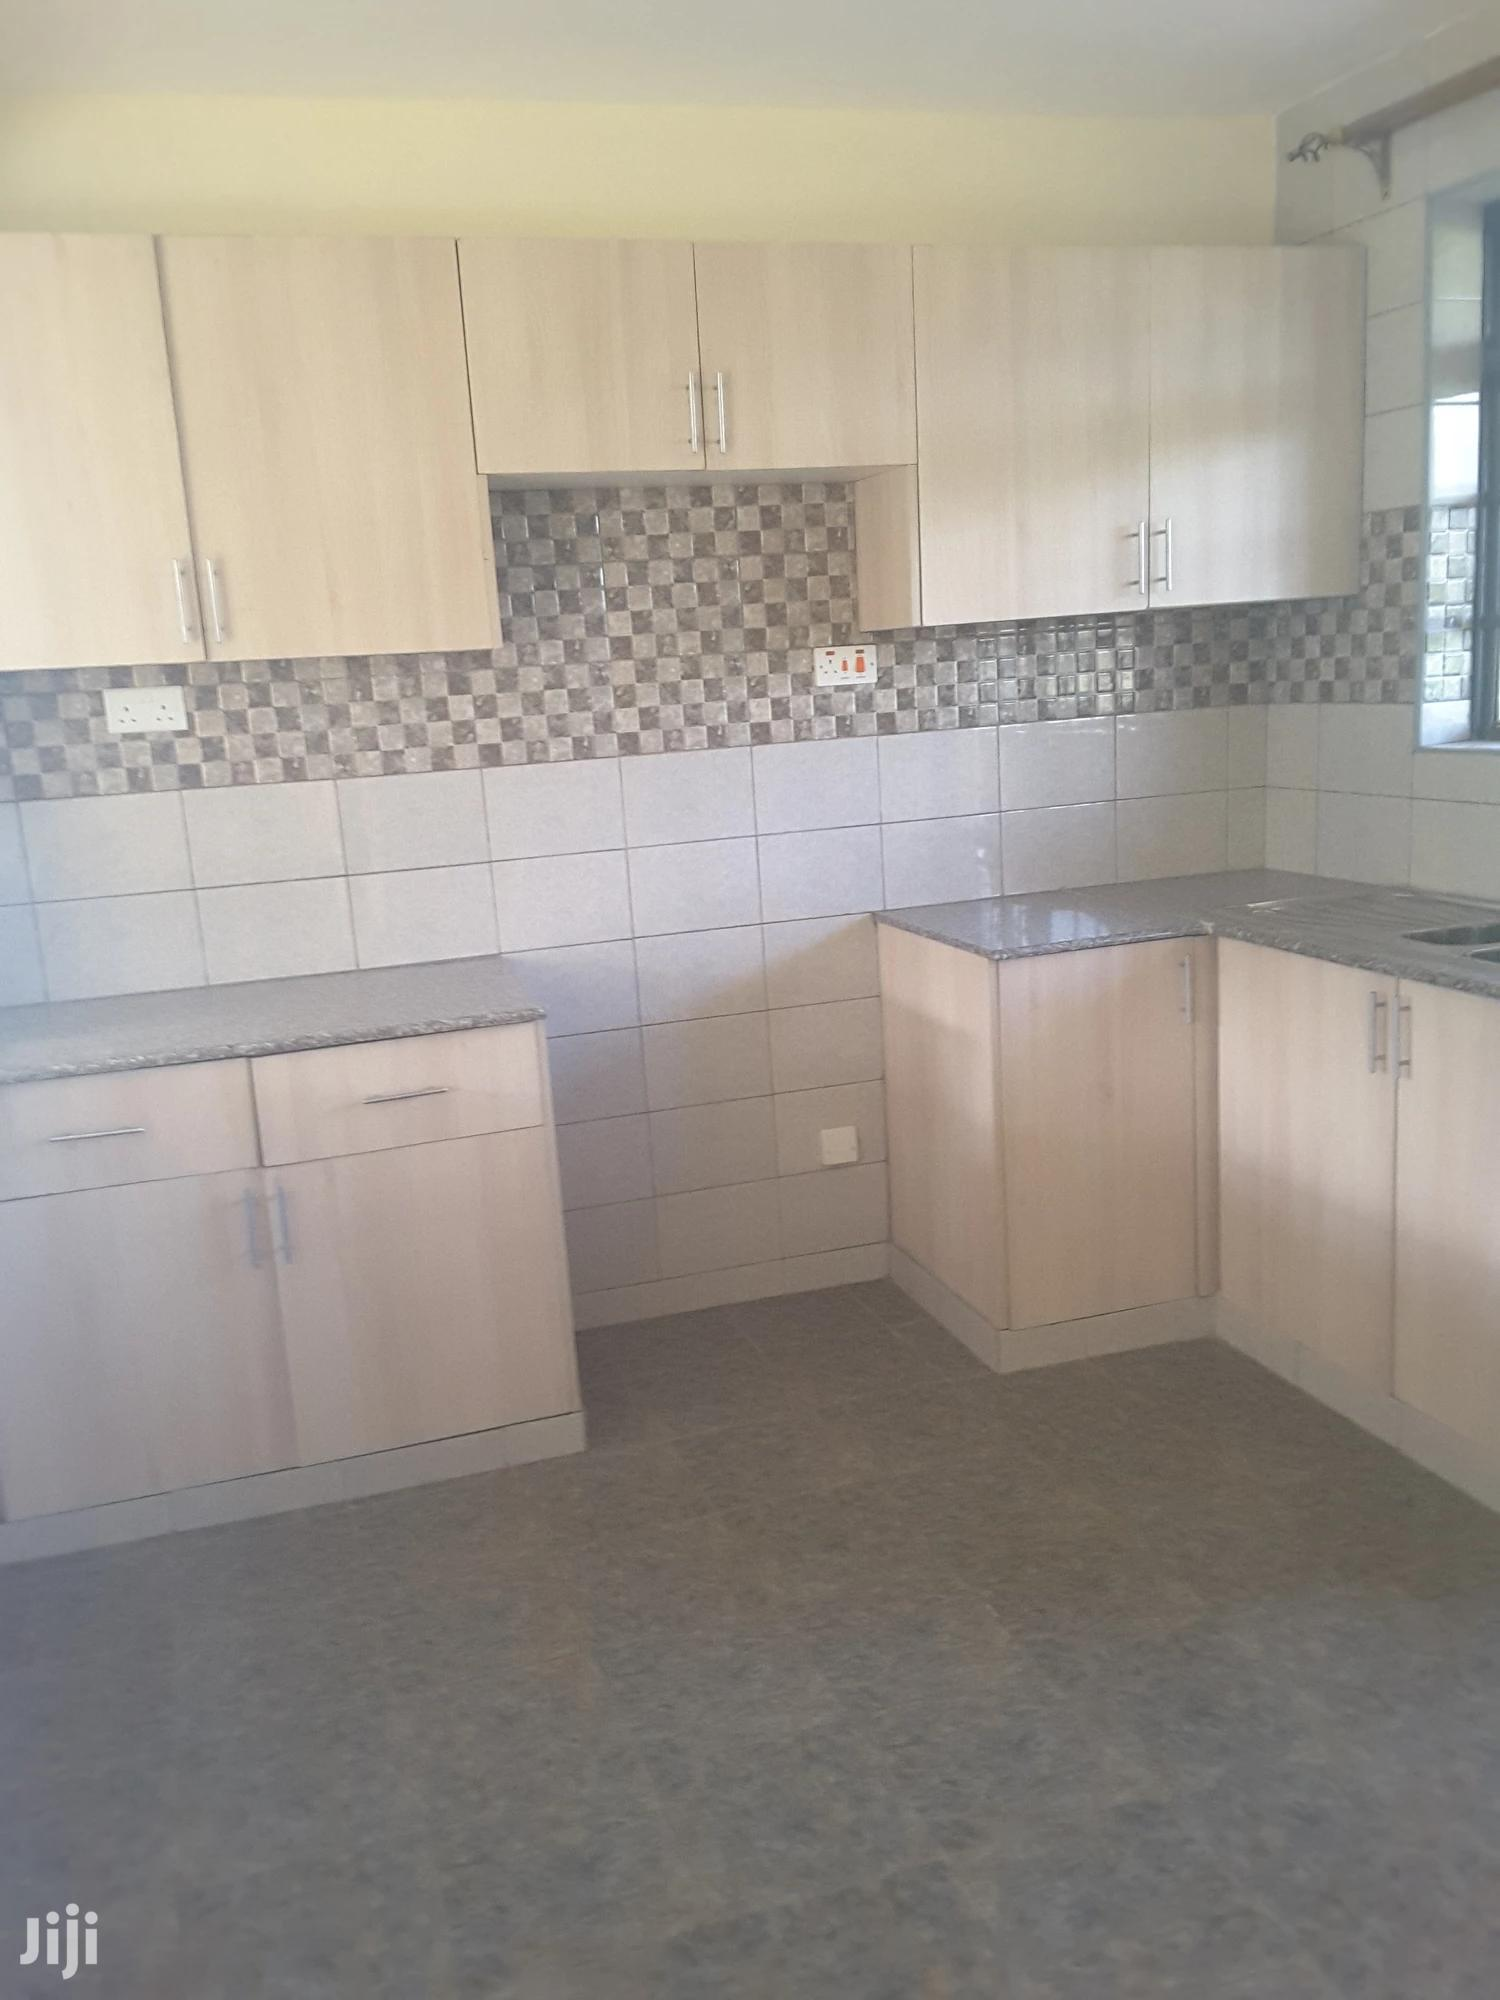 Lovely 4 BR Houses In Ongata Rongai | Houses & Apartments For Sale for sale in Ongata Rongai, Kajiado, Kenya